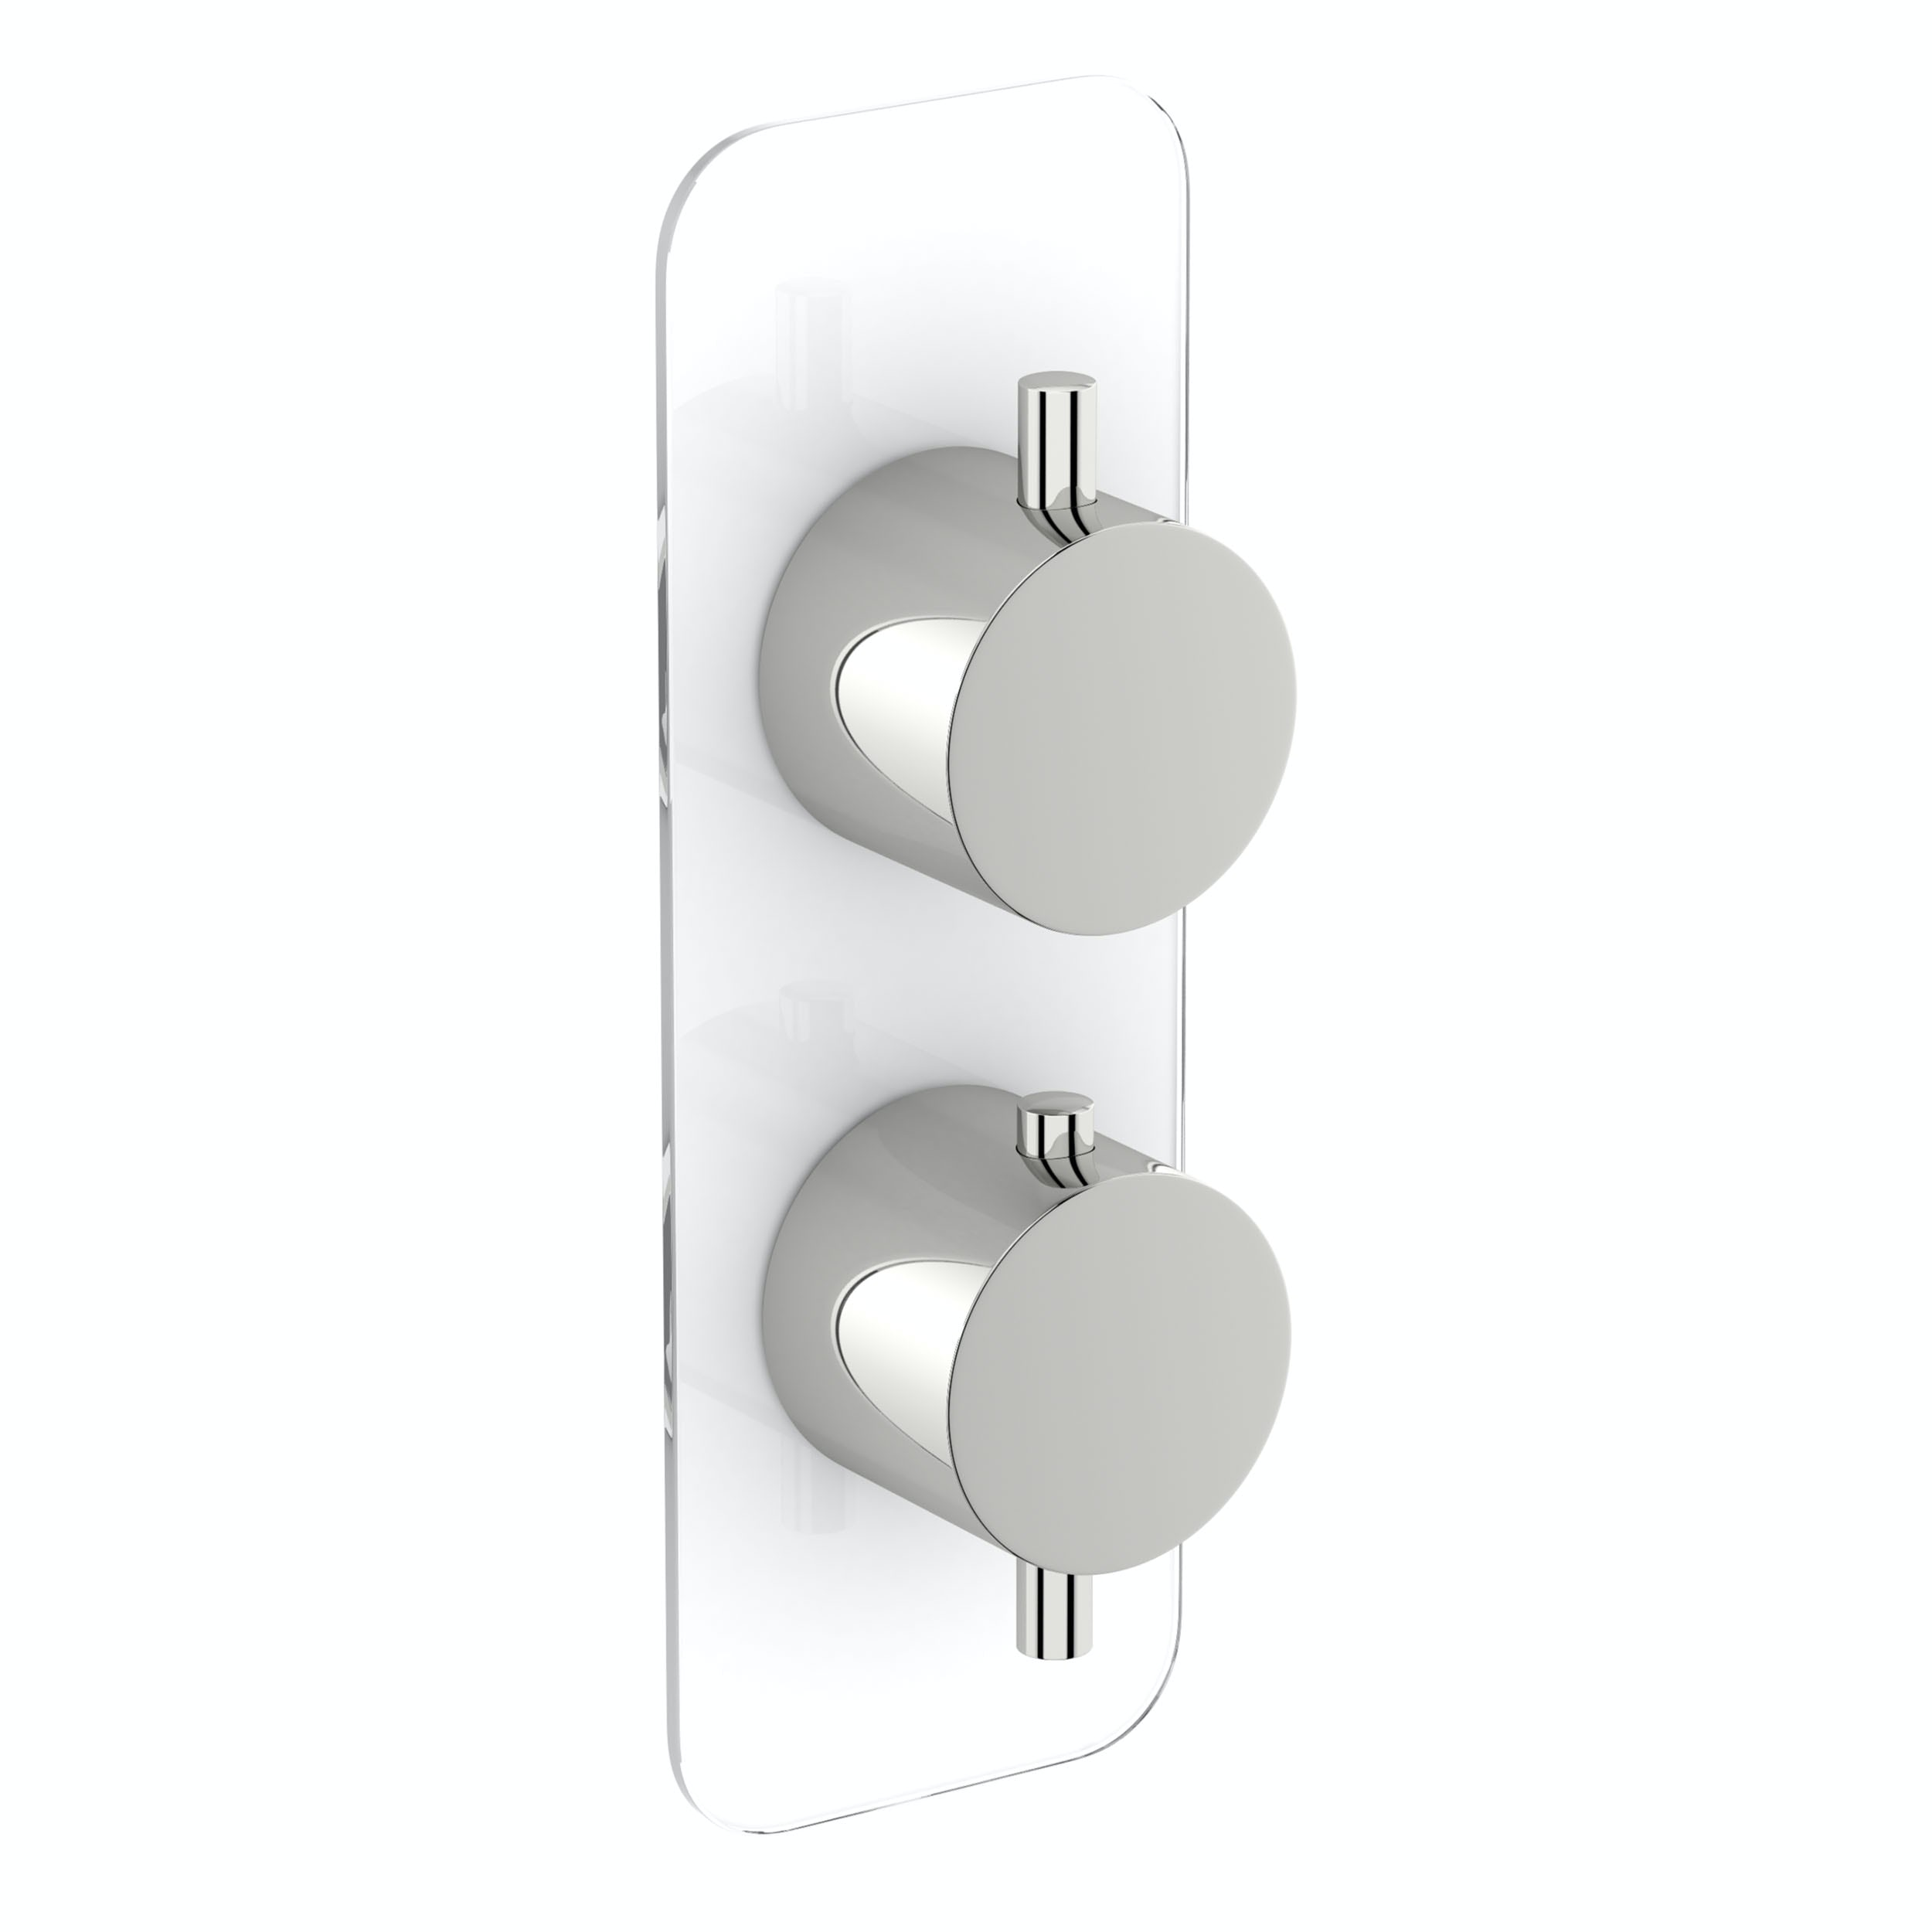 Mode Austin twin thermostatic shower valve